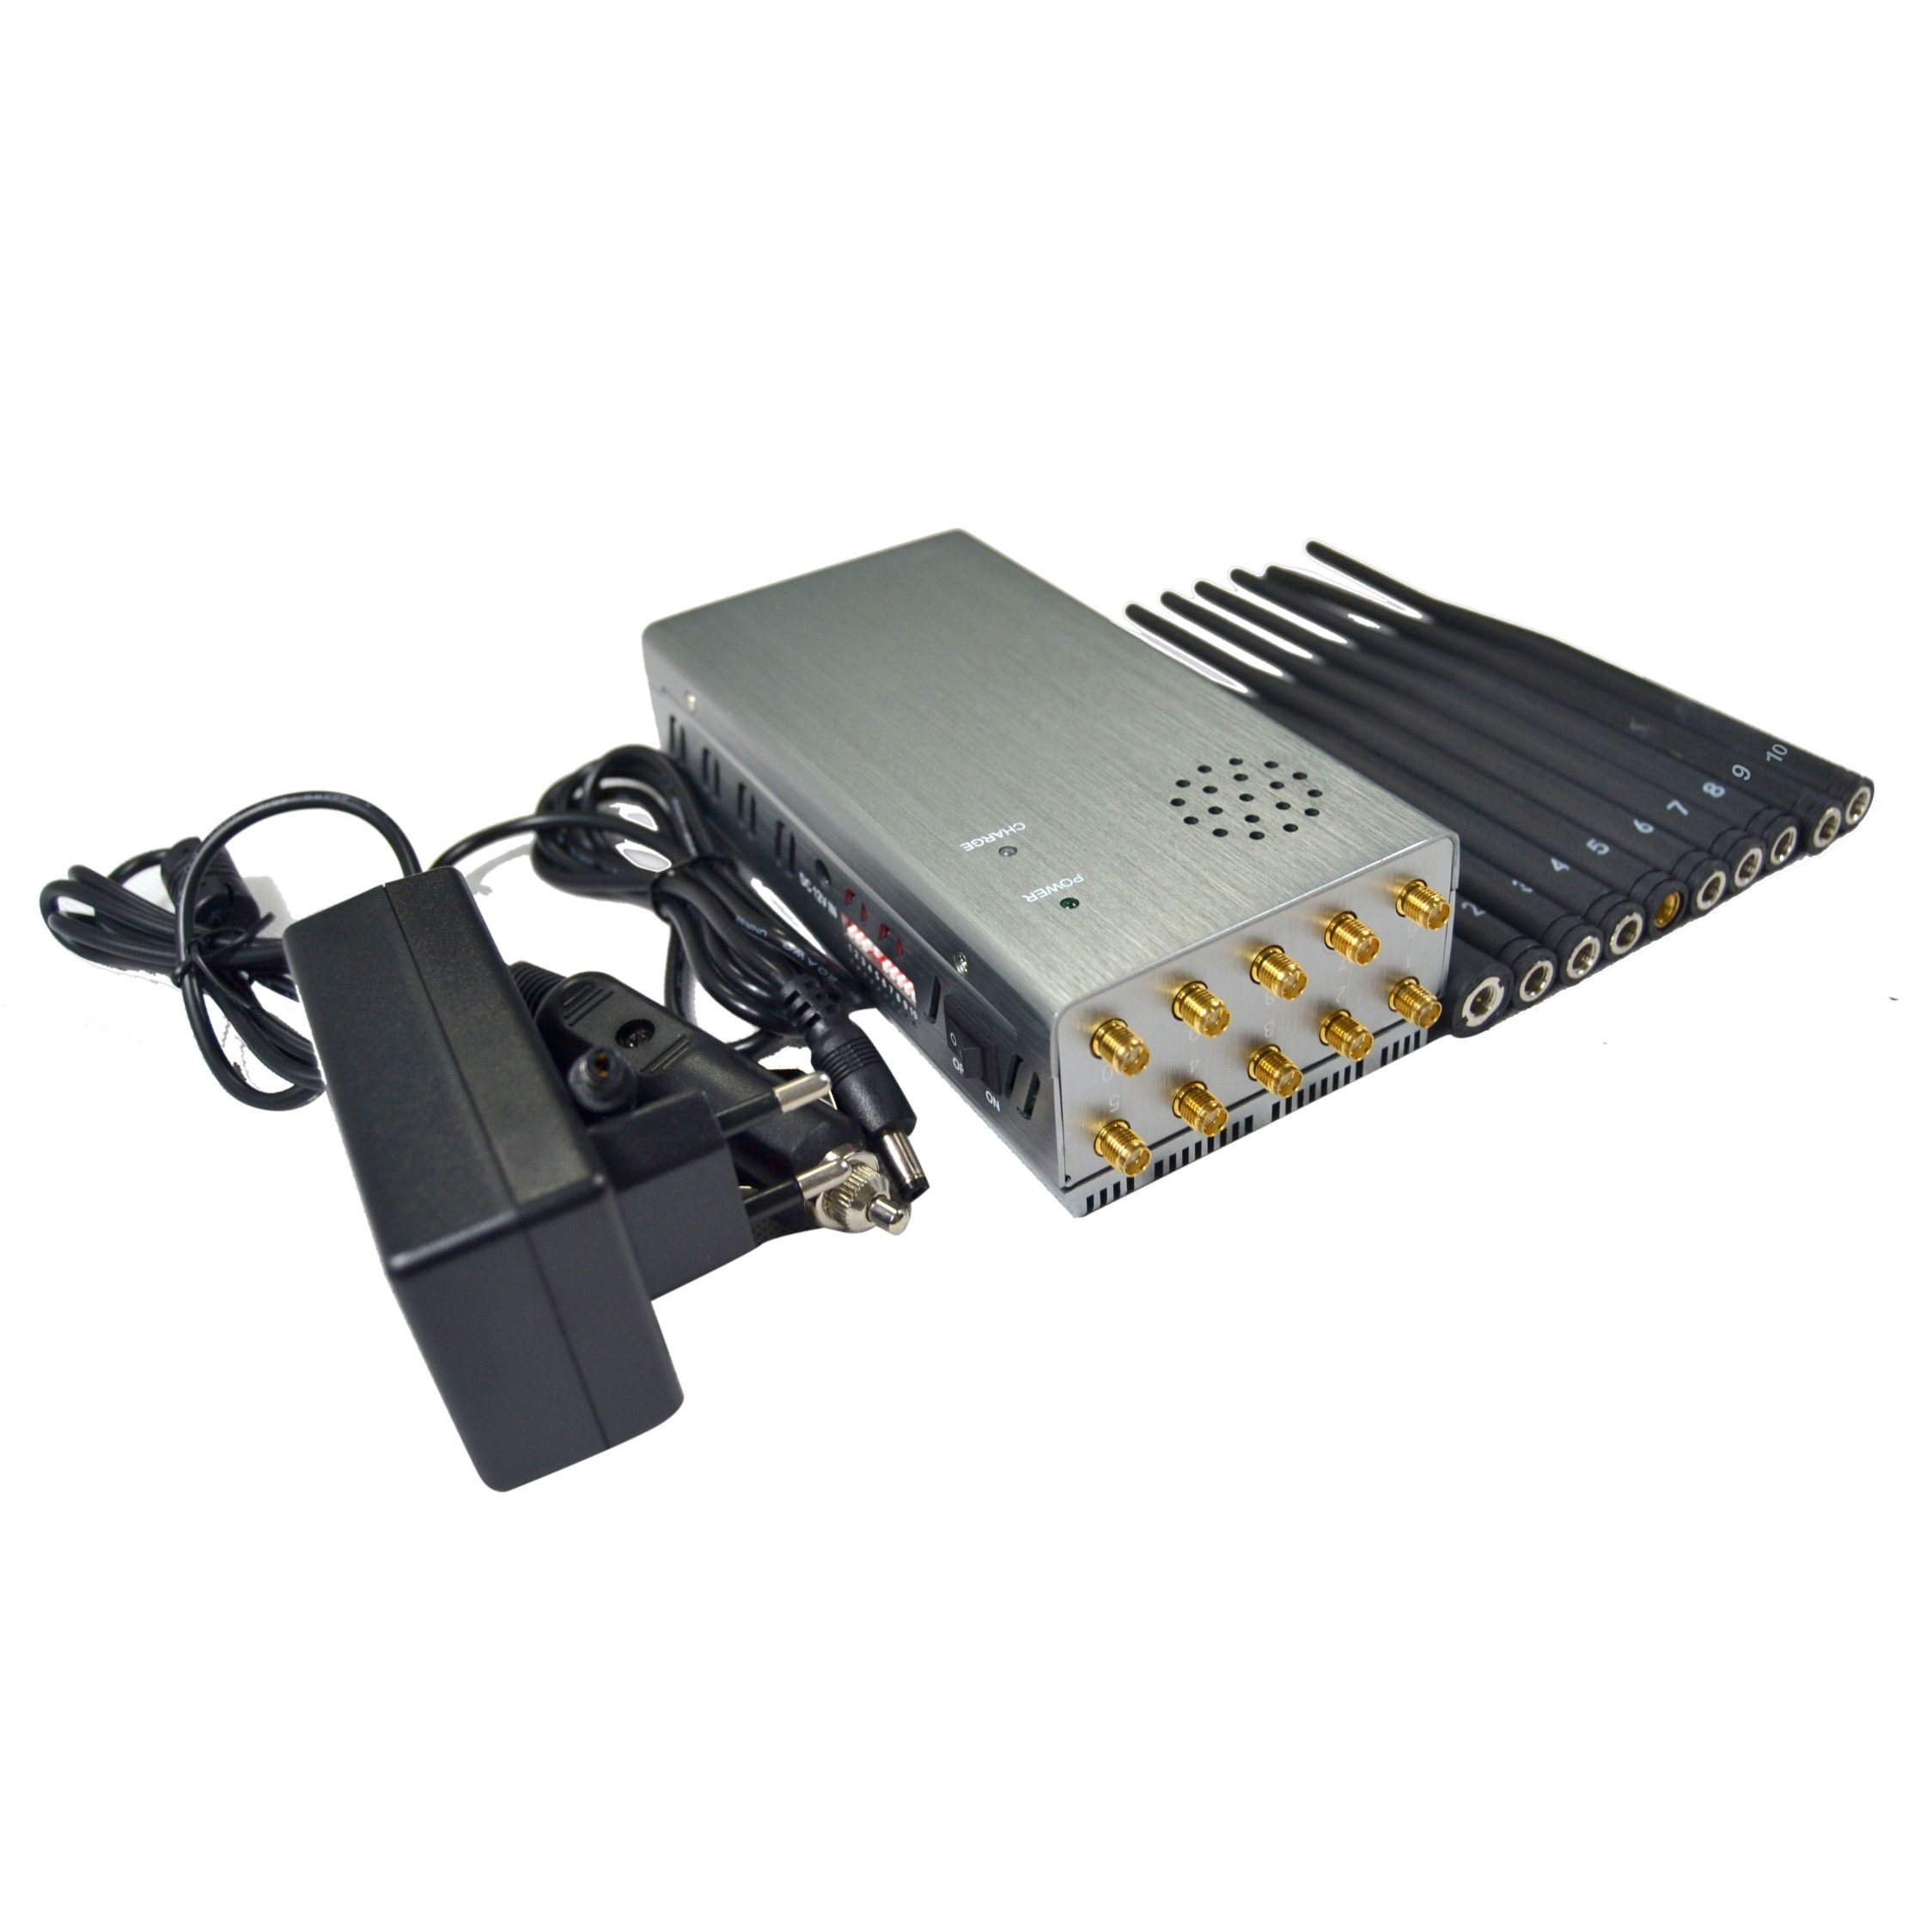 s-gps jammer 12v battery